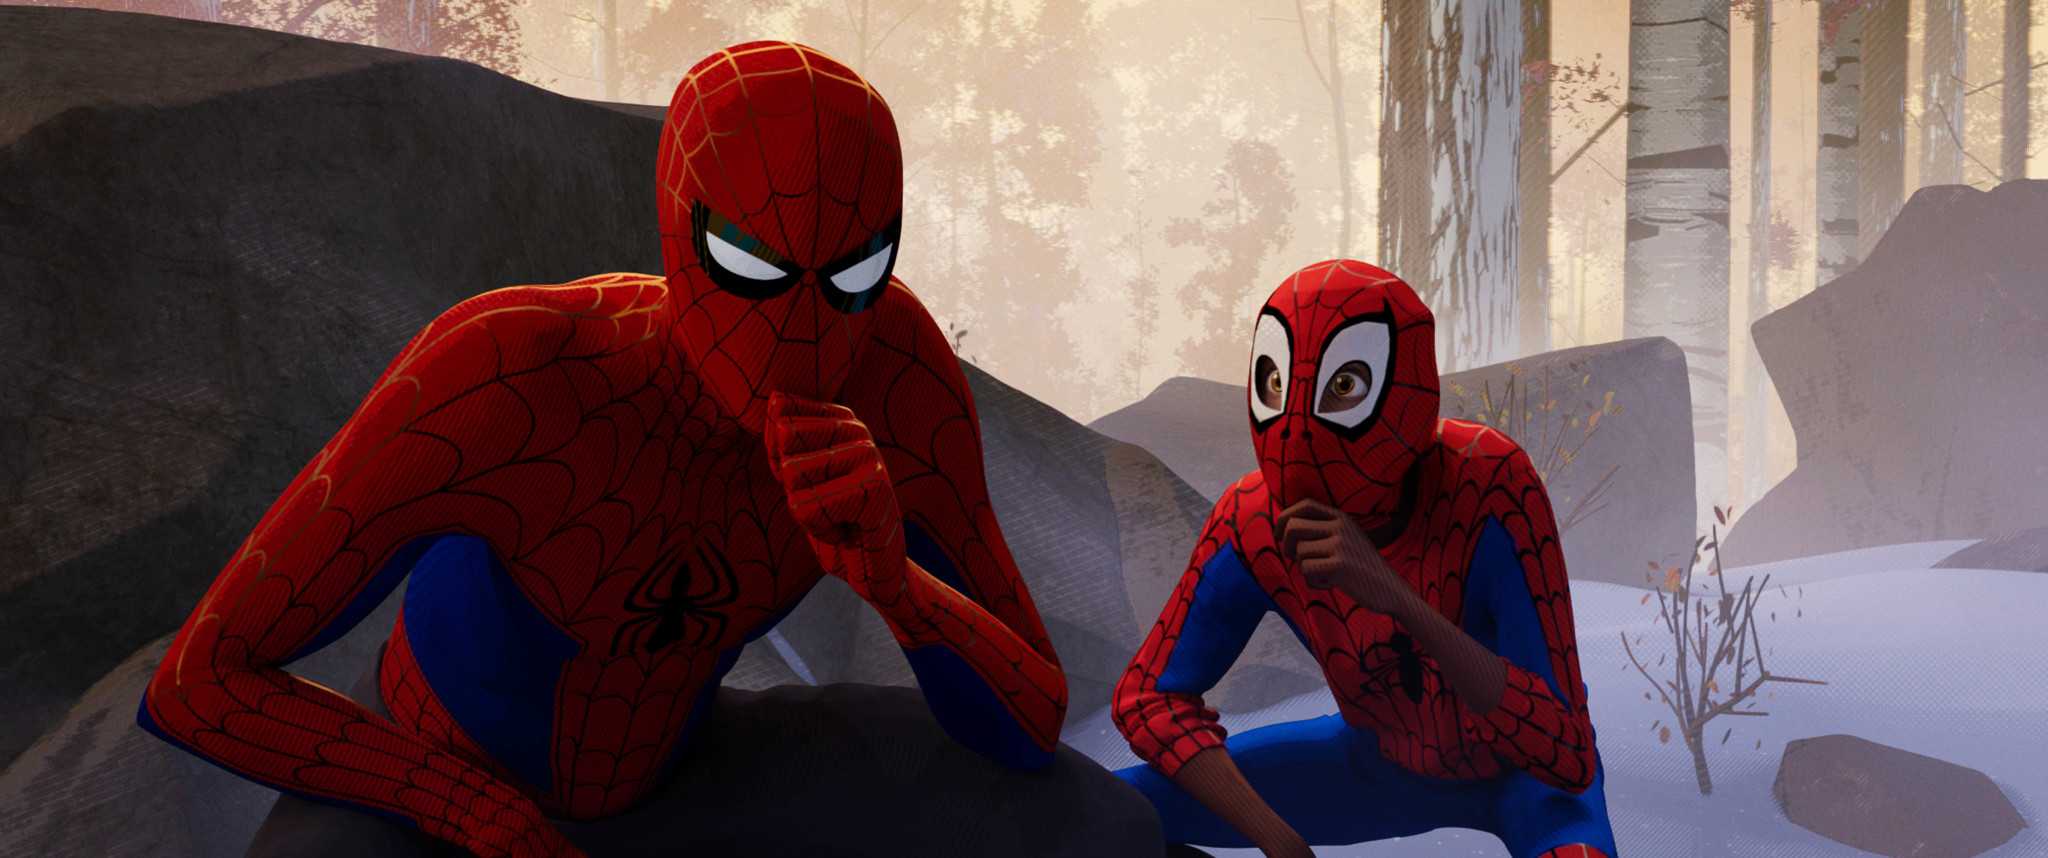 Spider-Man: New Generation, un grand cru Sony?